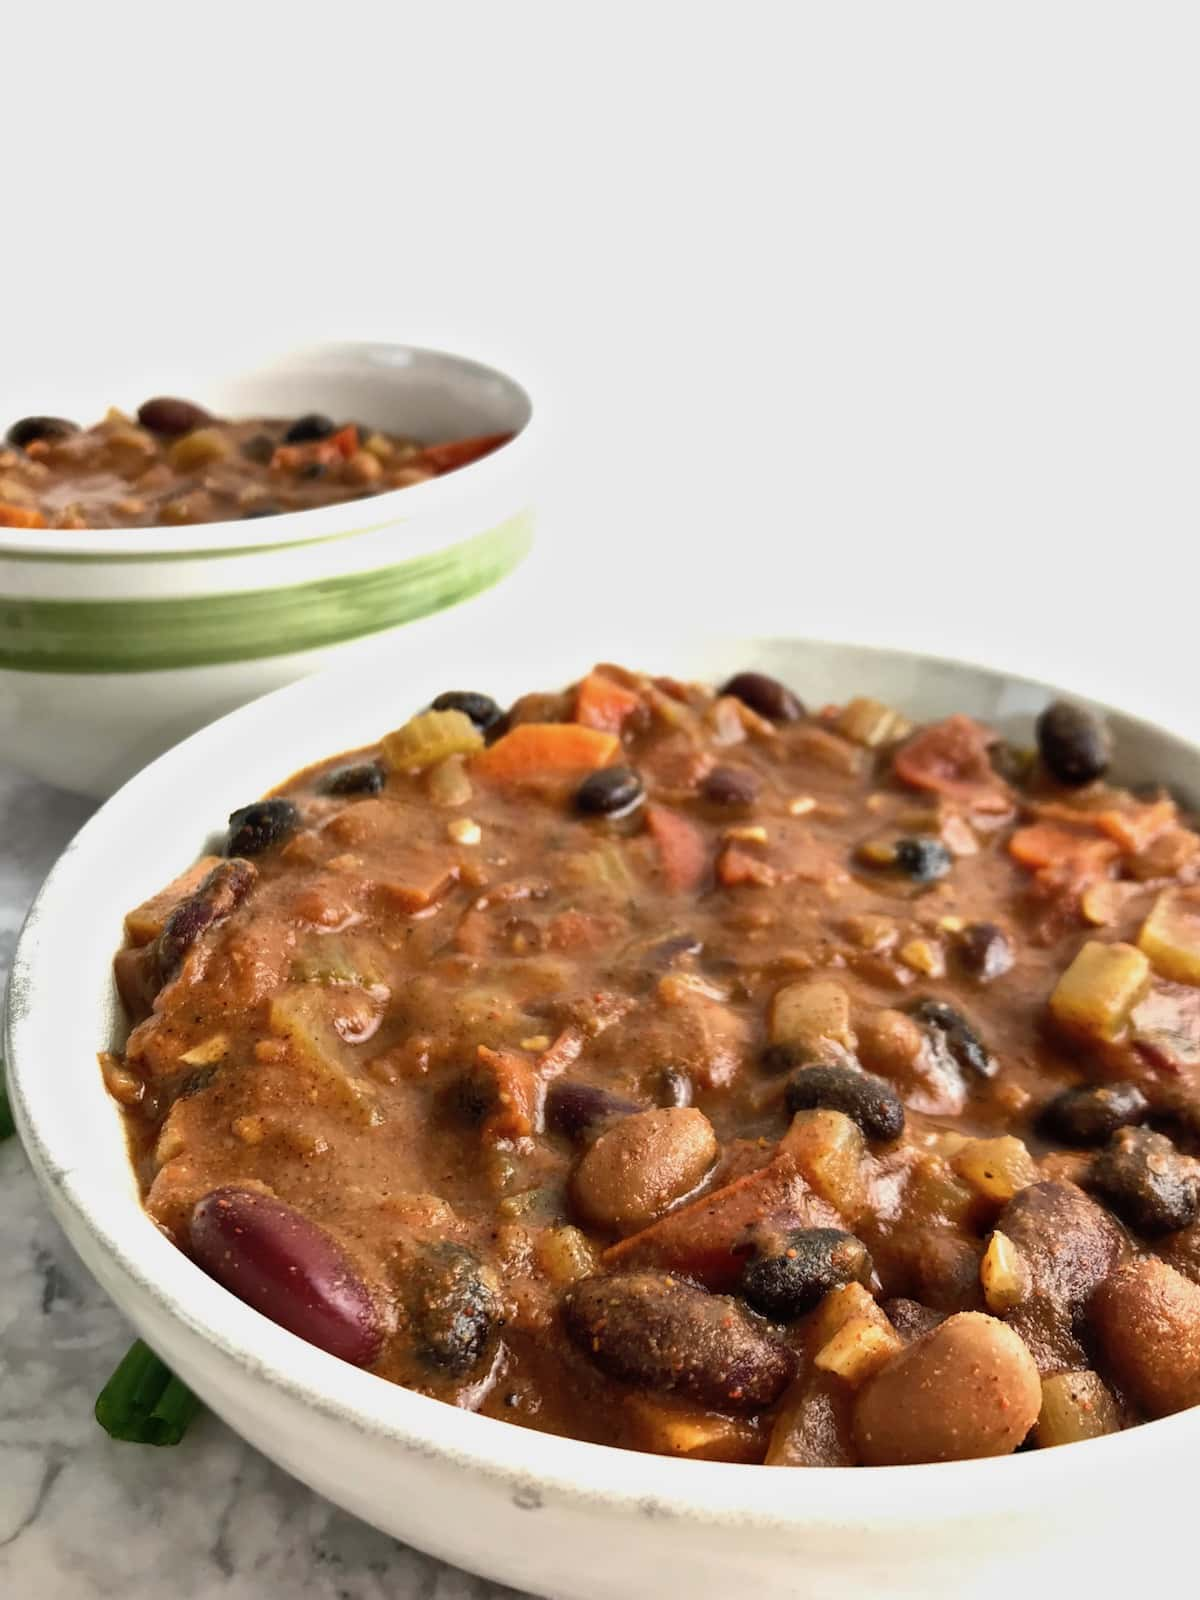 Close up of 3 bean chili in a bowl with another bowl of chili in the background.